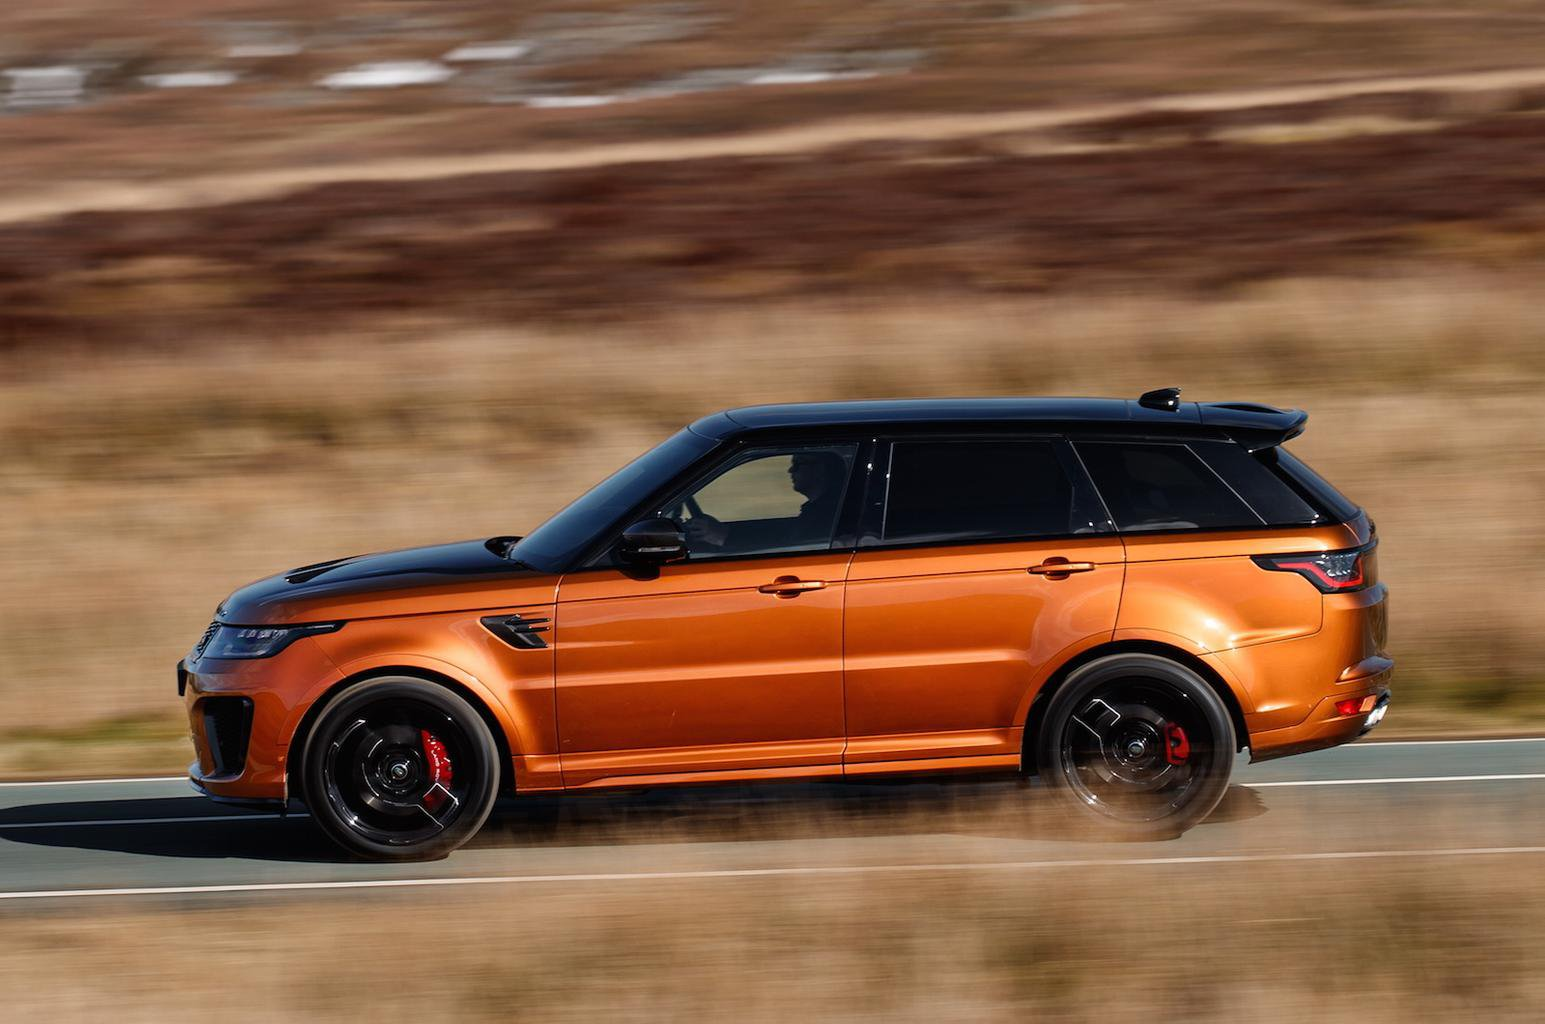 2018 Range Rover Sport SVR review - price, specs and release dates